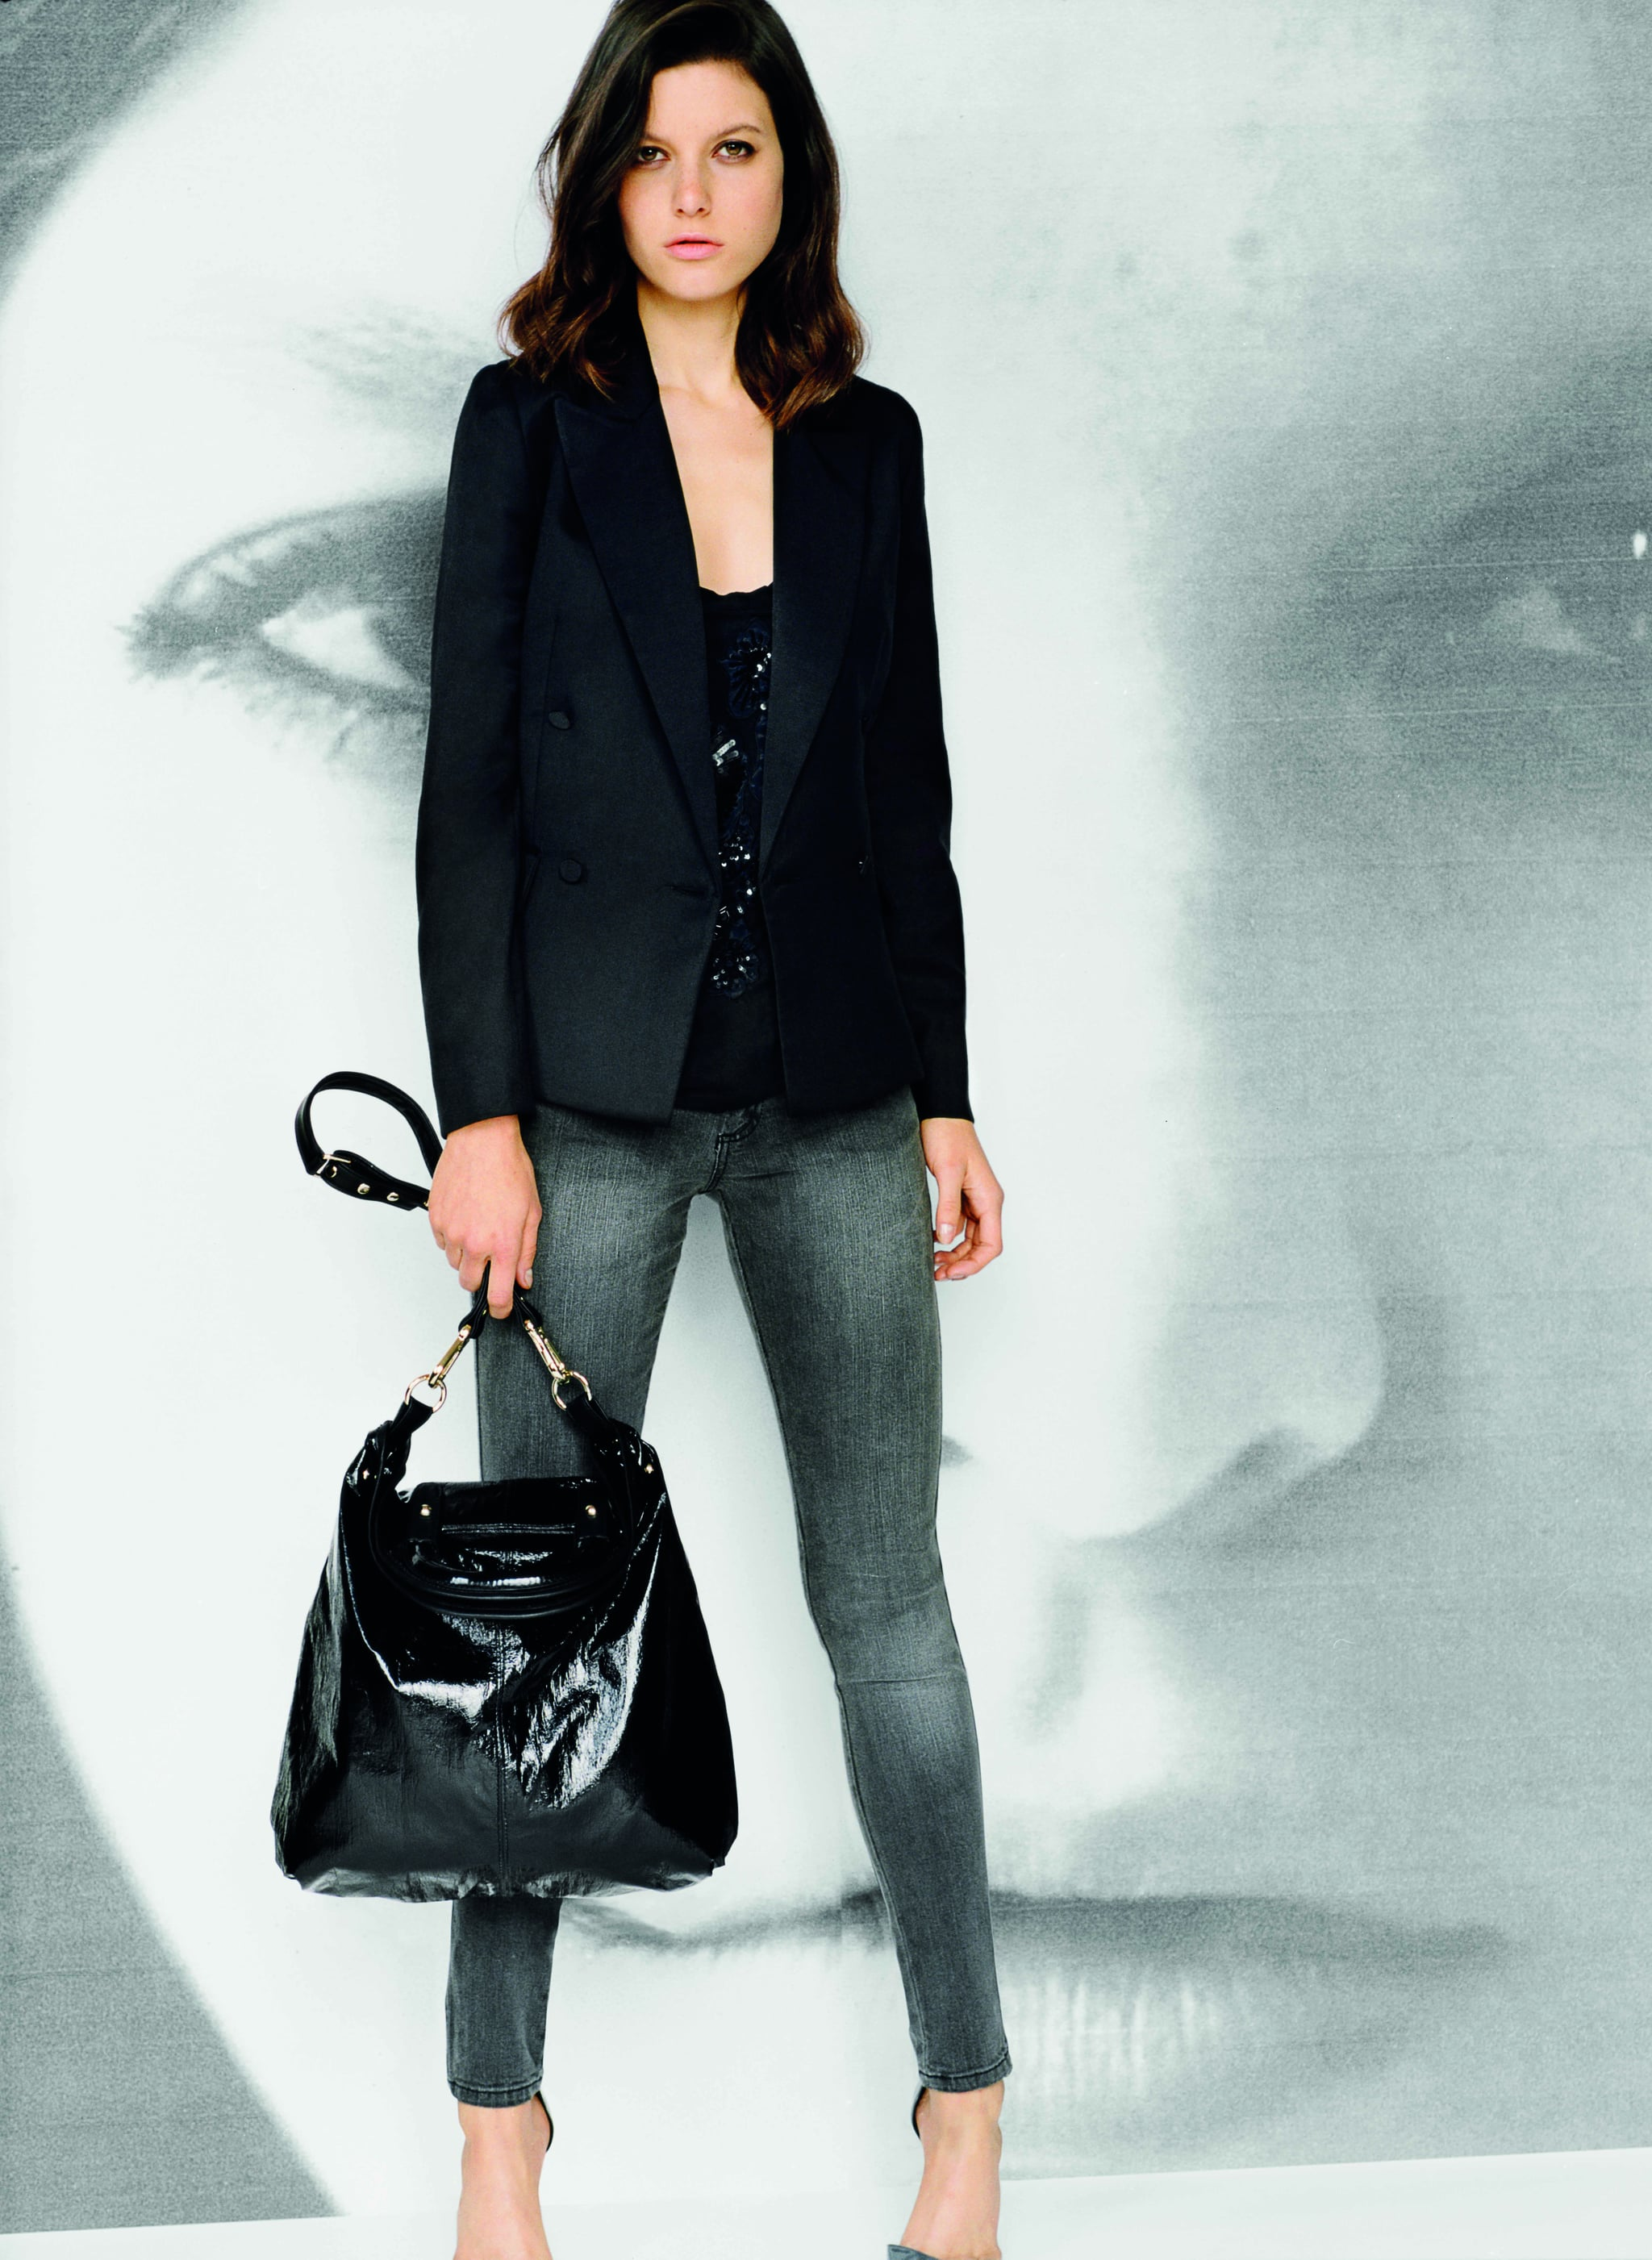 Small fitted double breasted jacket in black, $179 Embroidered T-shirt in black, $79 Ankle grazer jeans in grey denim, $99 PU tote bag in black, $99